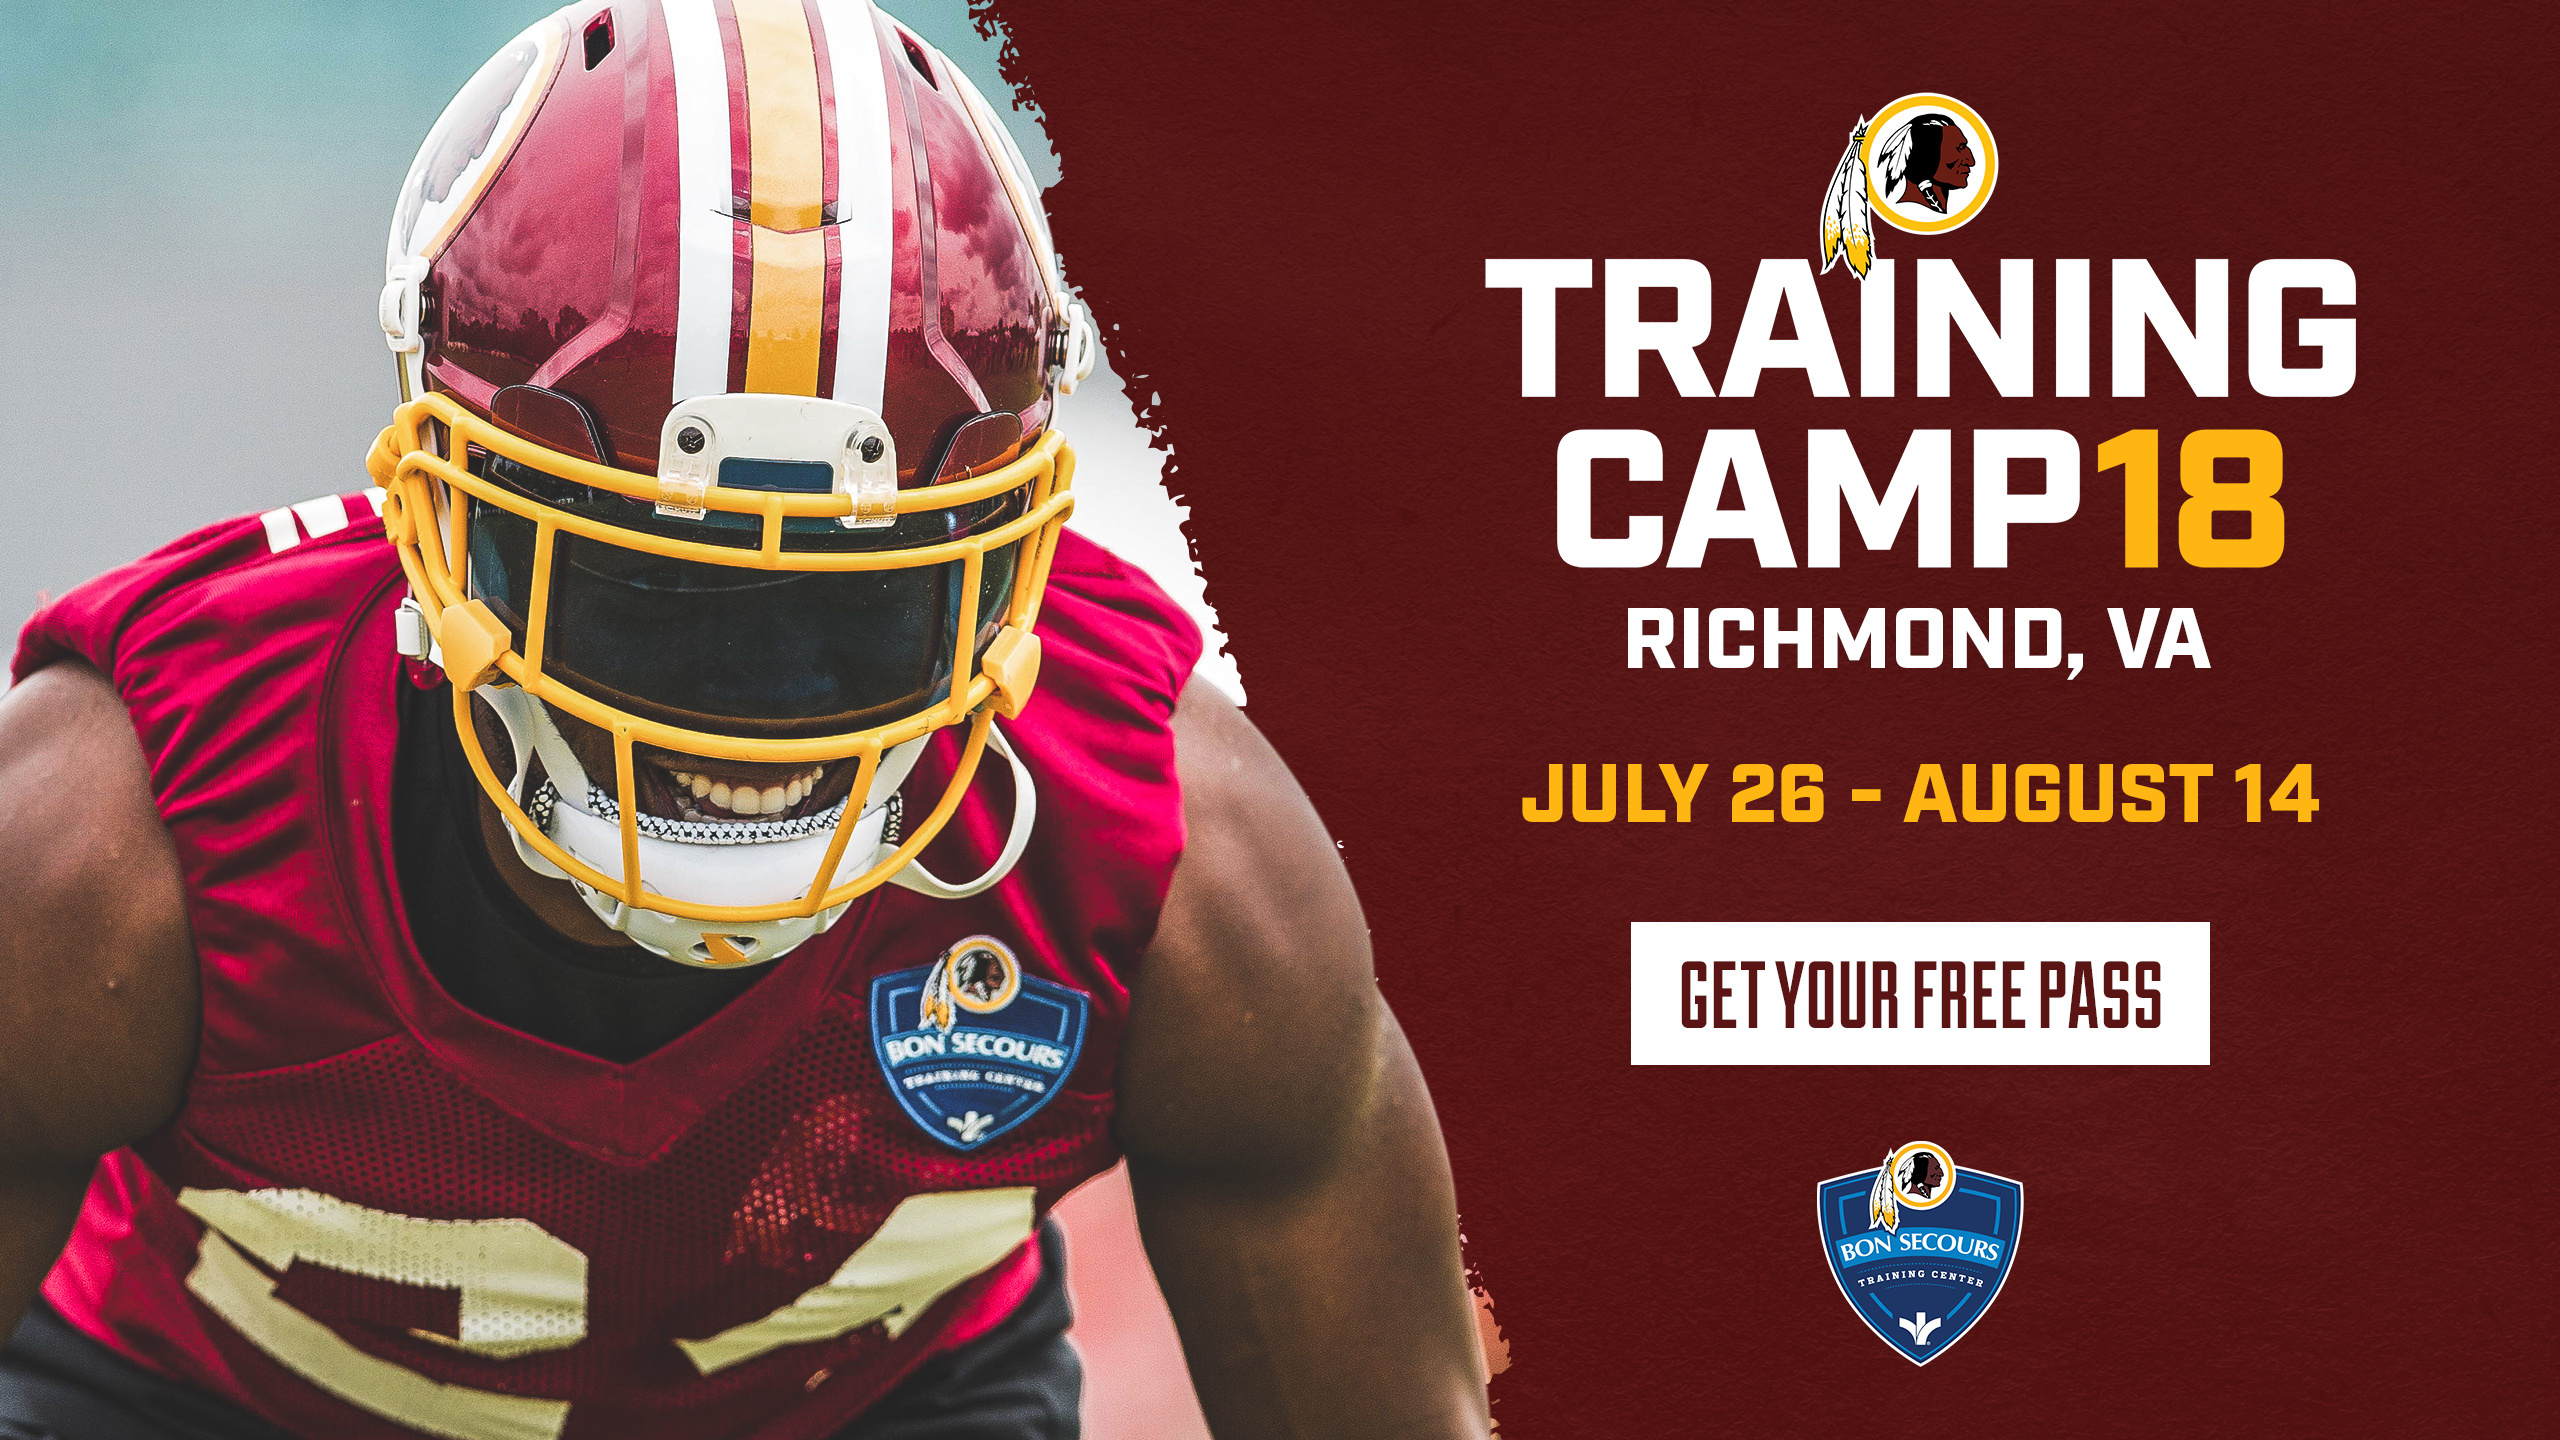 15a6981d8 Passes are required to enter training camp